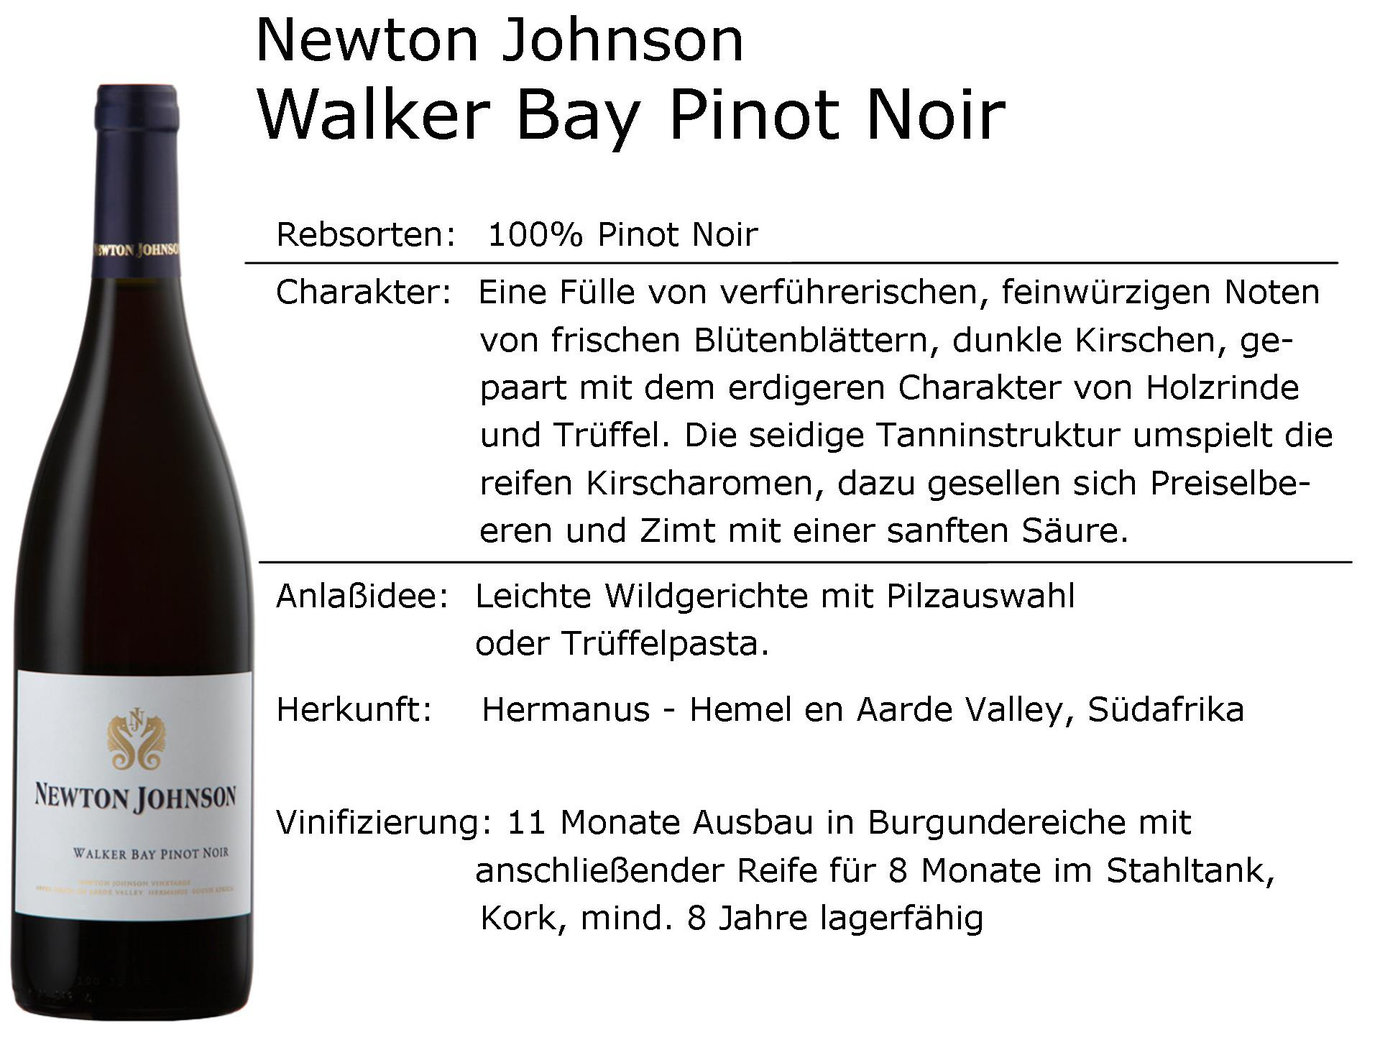 Newton Johnson Walker Bay Pinot Noir 2018